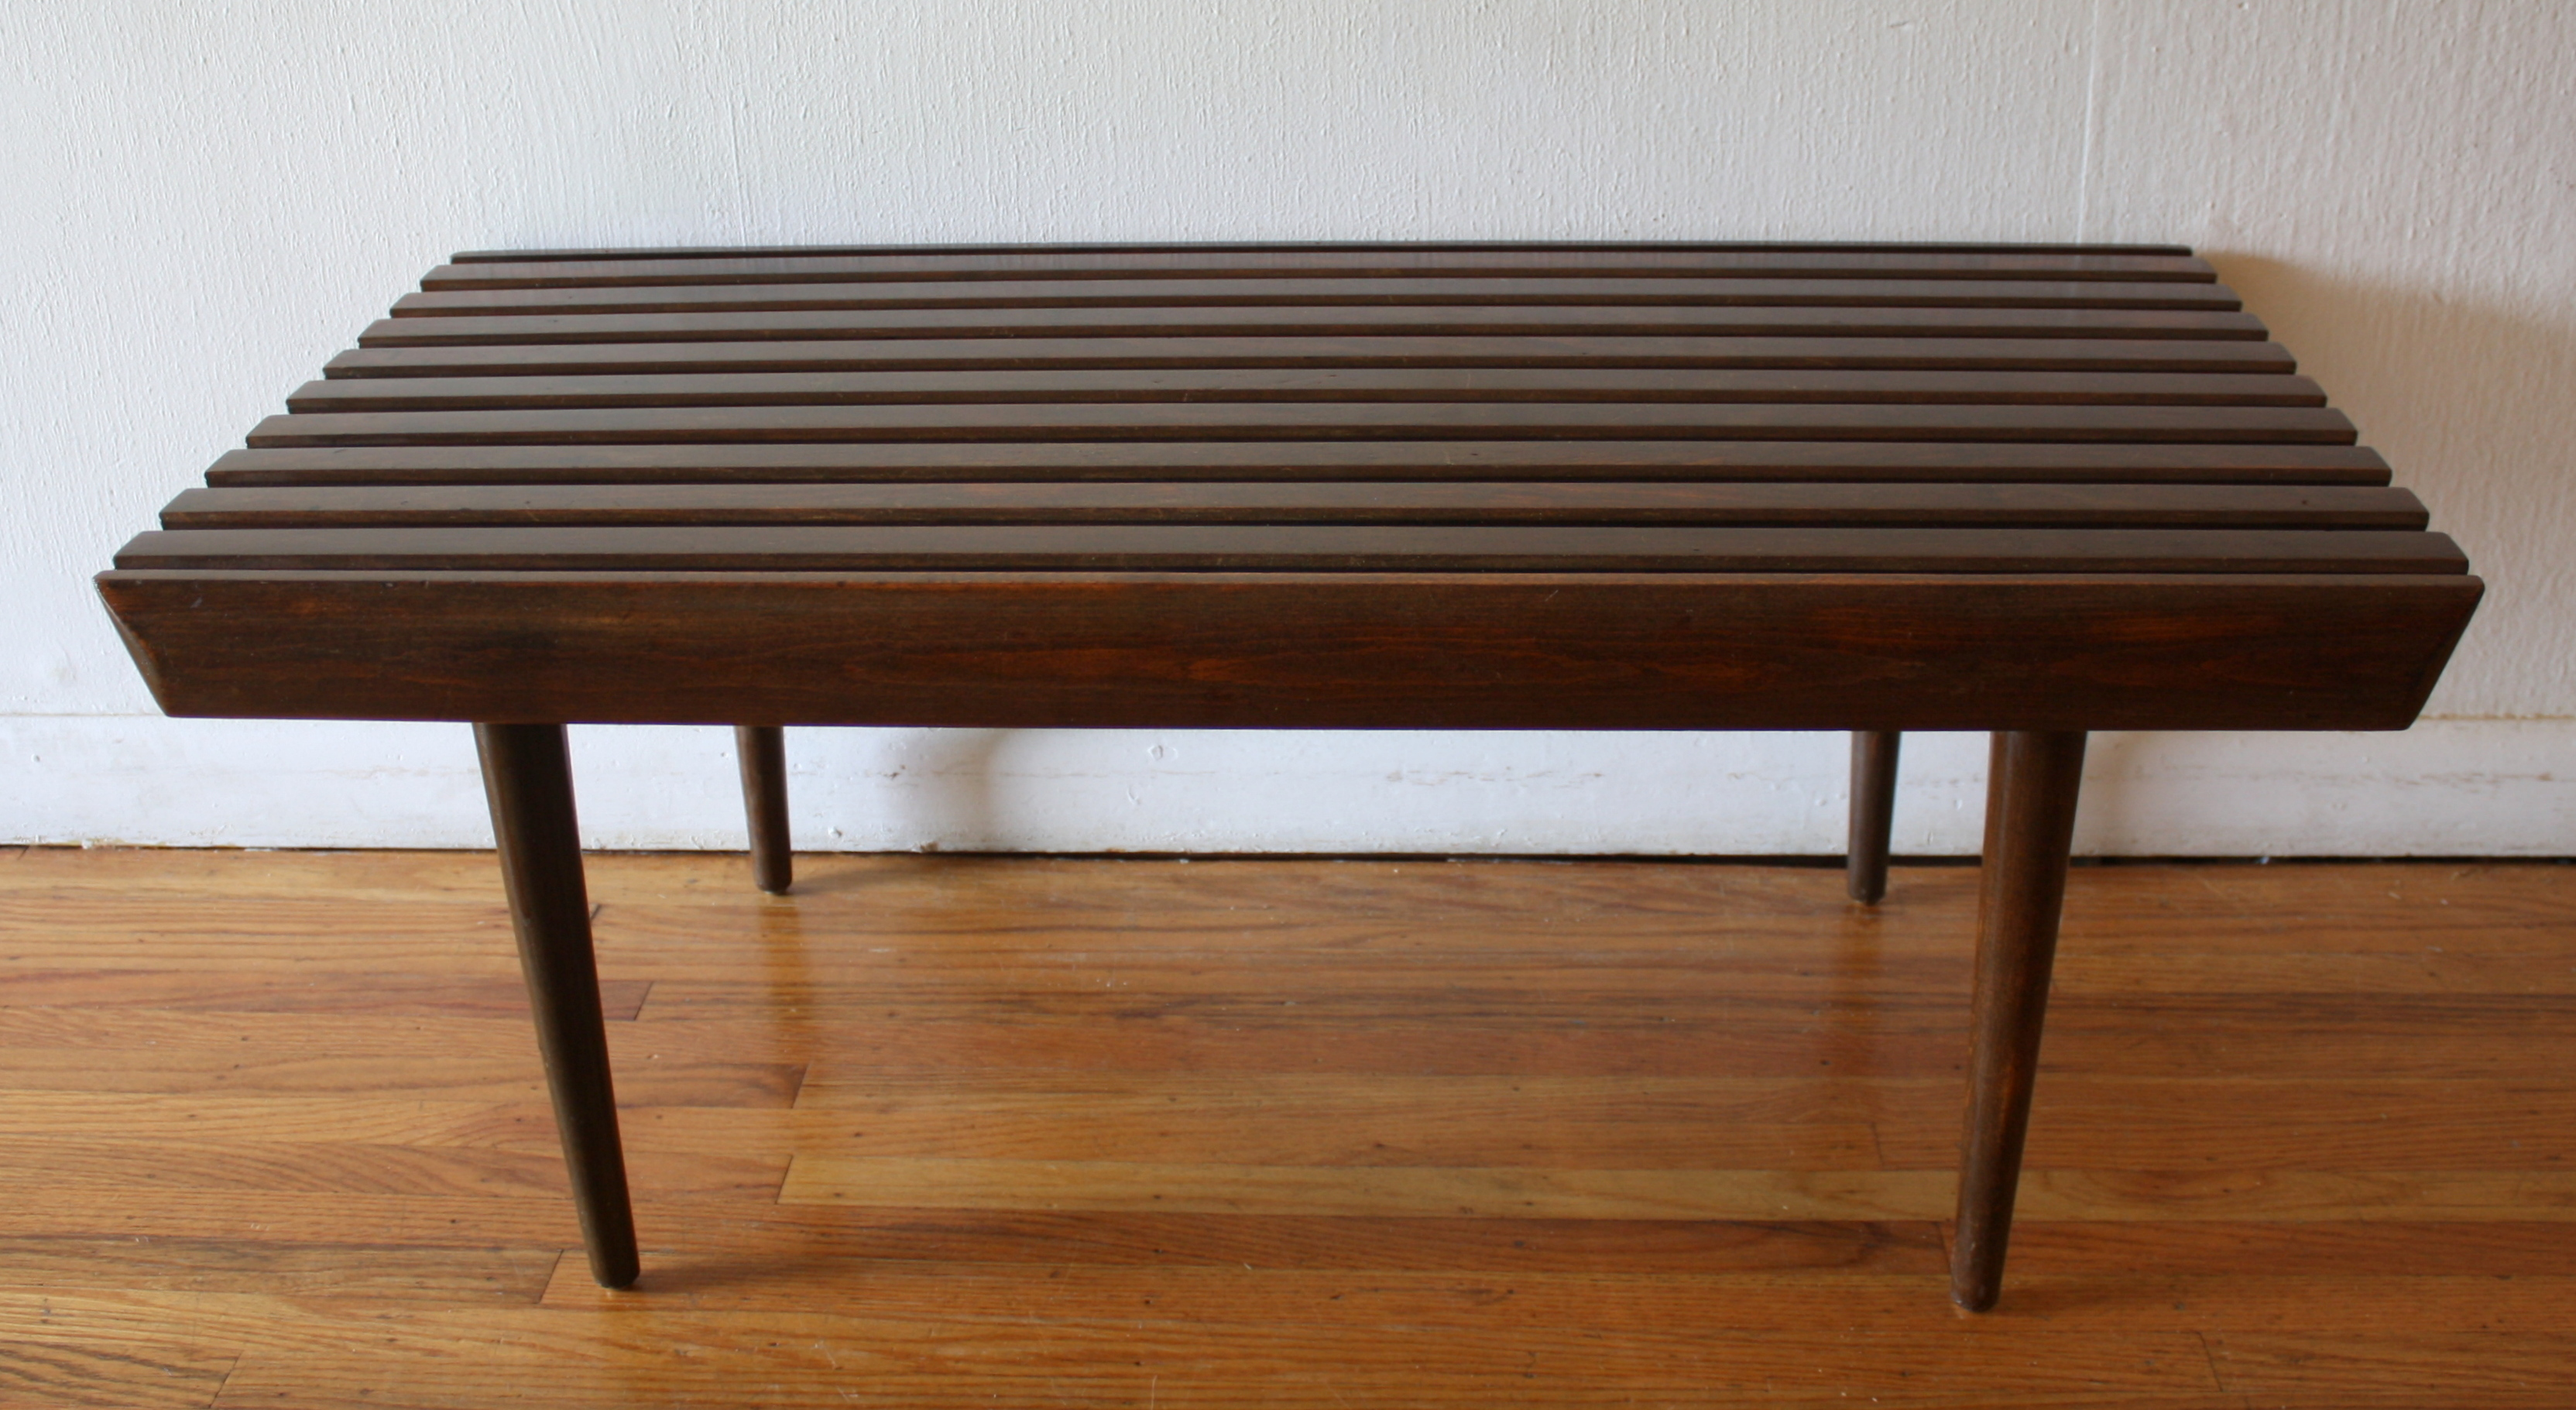 mcm slatted table bench with rounded edge 3.JPG